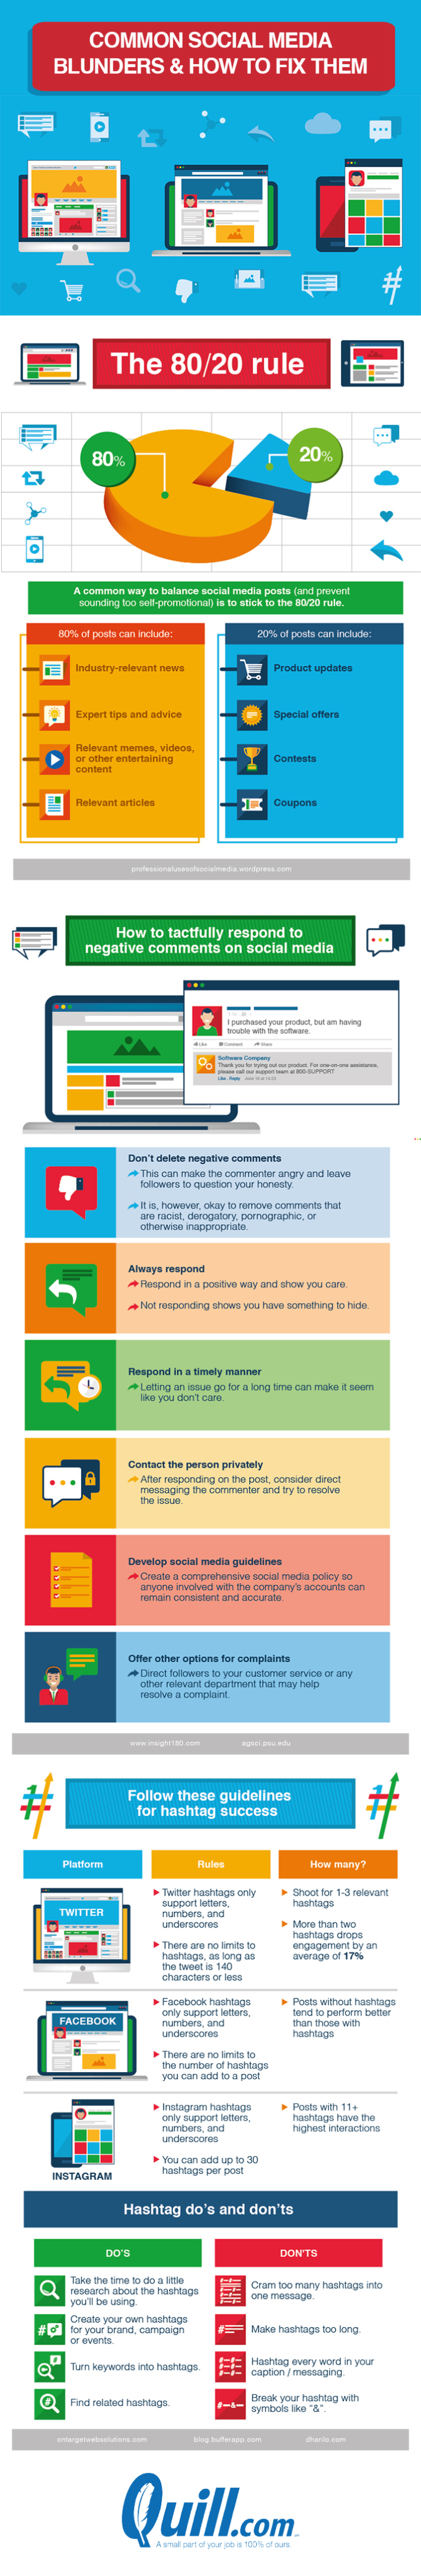 12 Common Social Media Management Mistakes (and How to Prevent Them) [Infographic]